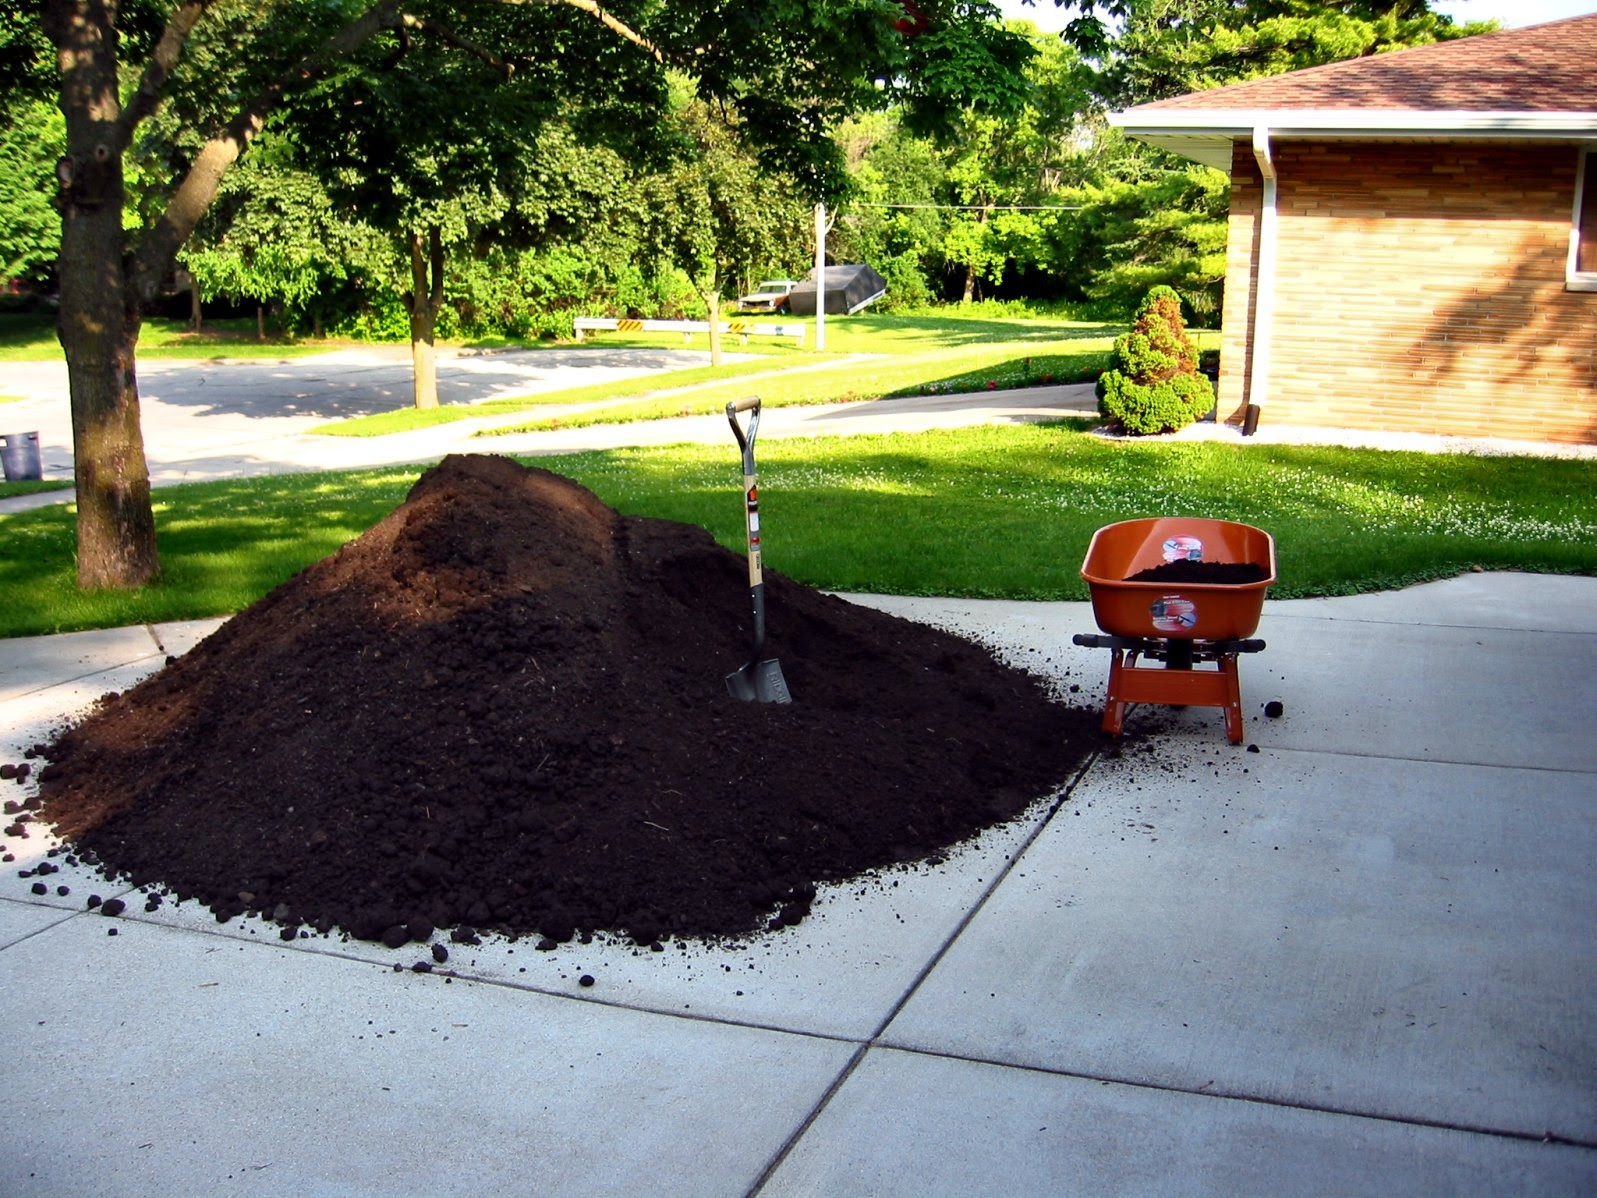 Five Cubic Yards of Top Soil - Milwaukee, Wisconsin - June 2009 - photos by Mike Fisk - soul-amp.com